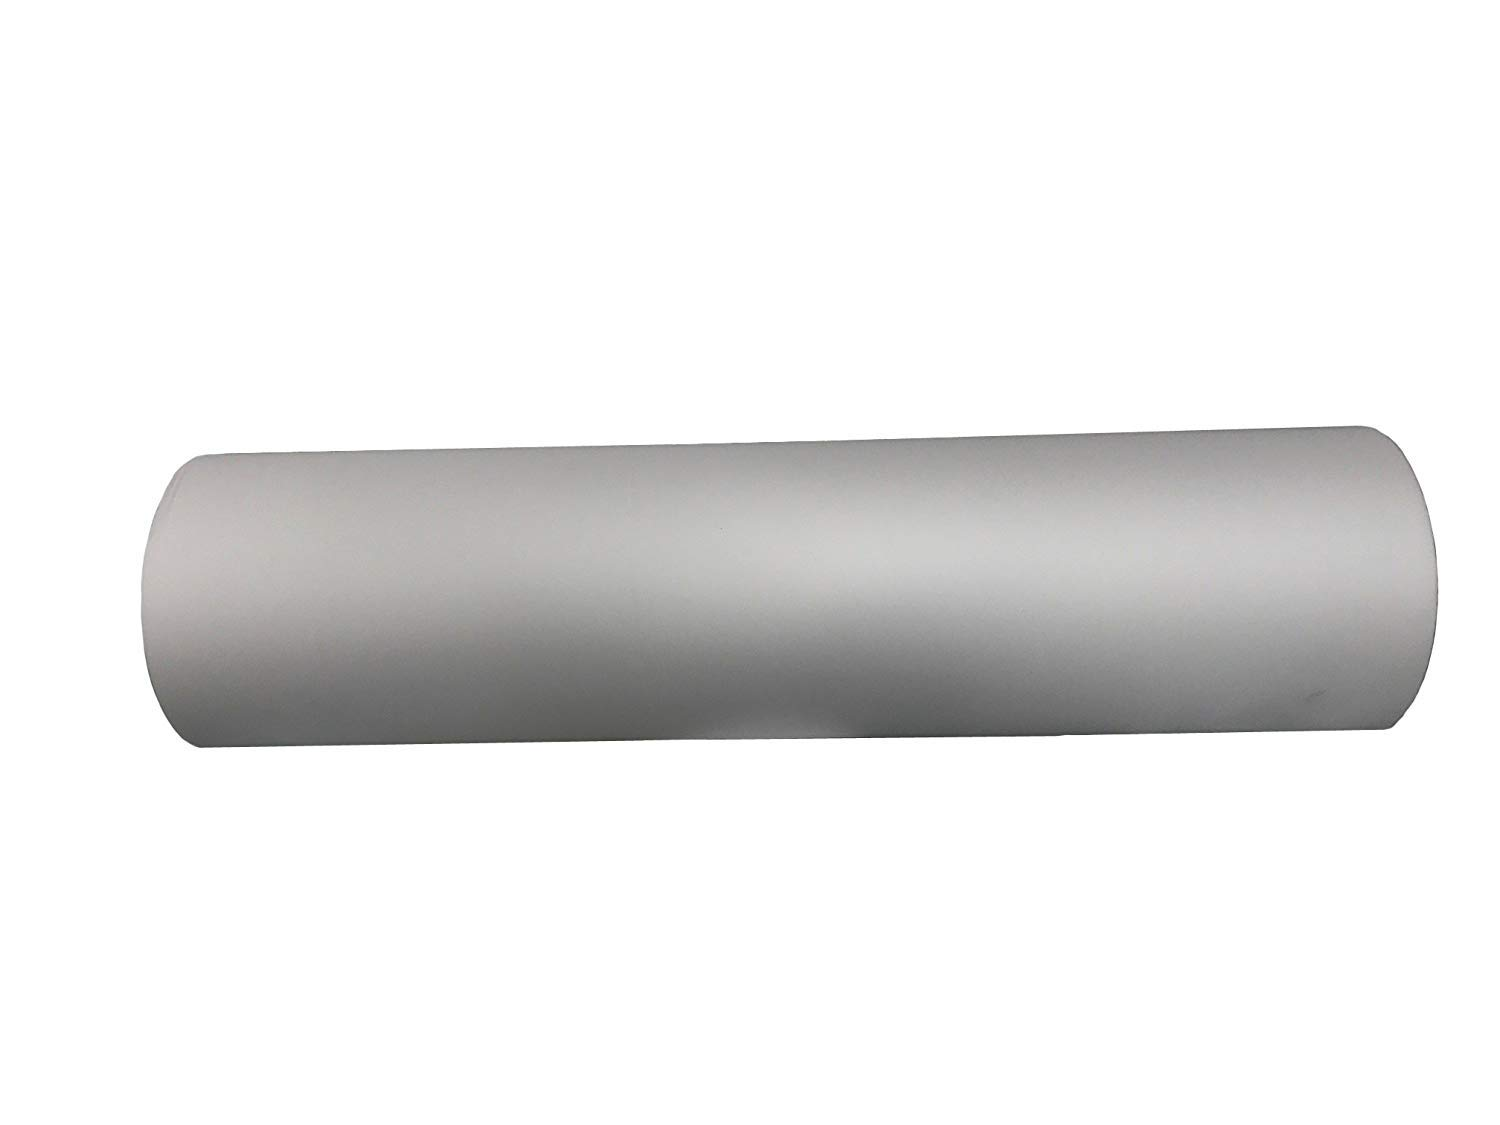 Matte Laminating Film Soft Touch 18'' x 500ft x 1'' Core by PPE (Image #3)